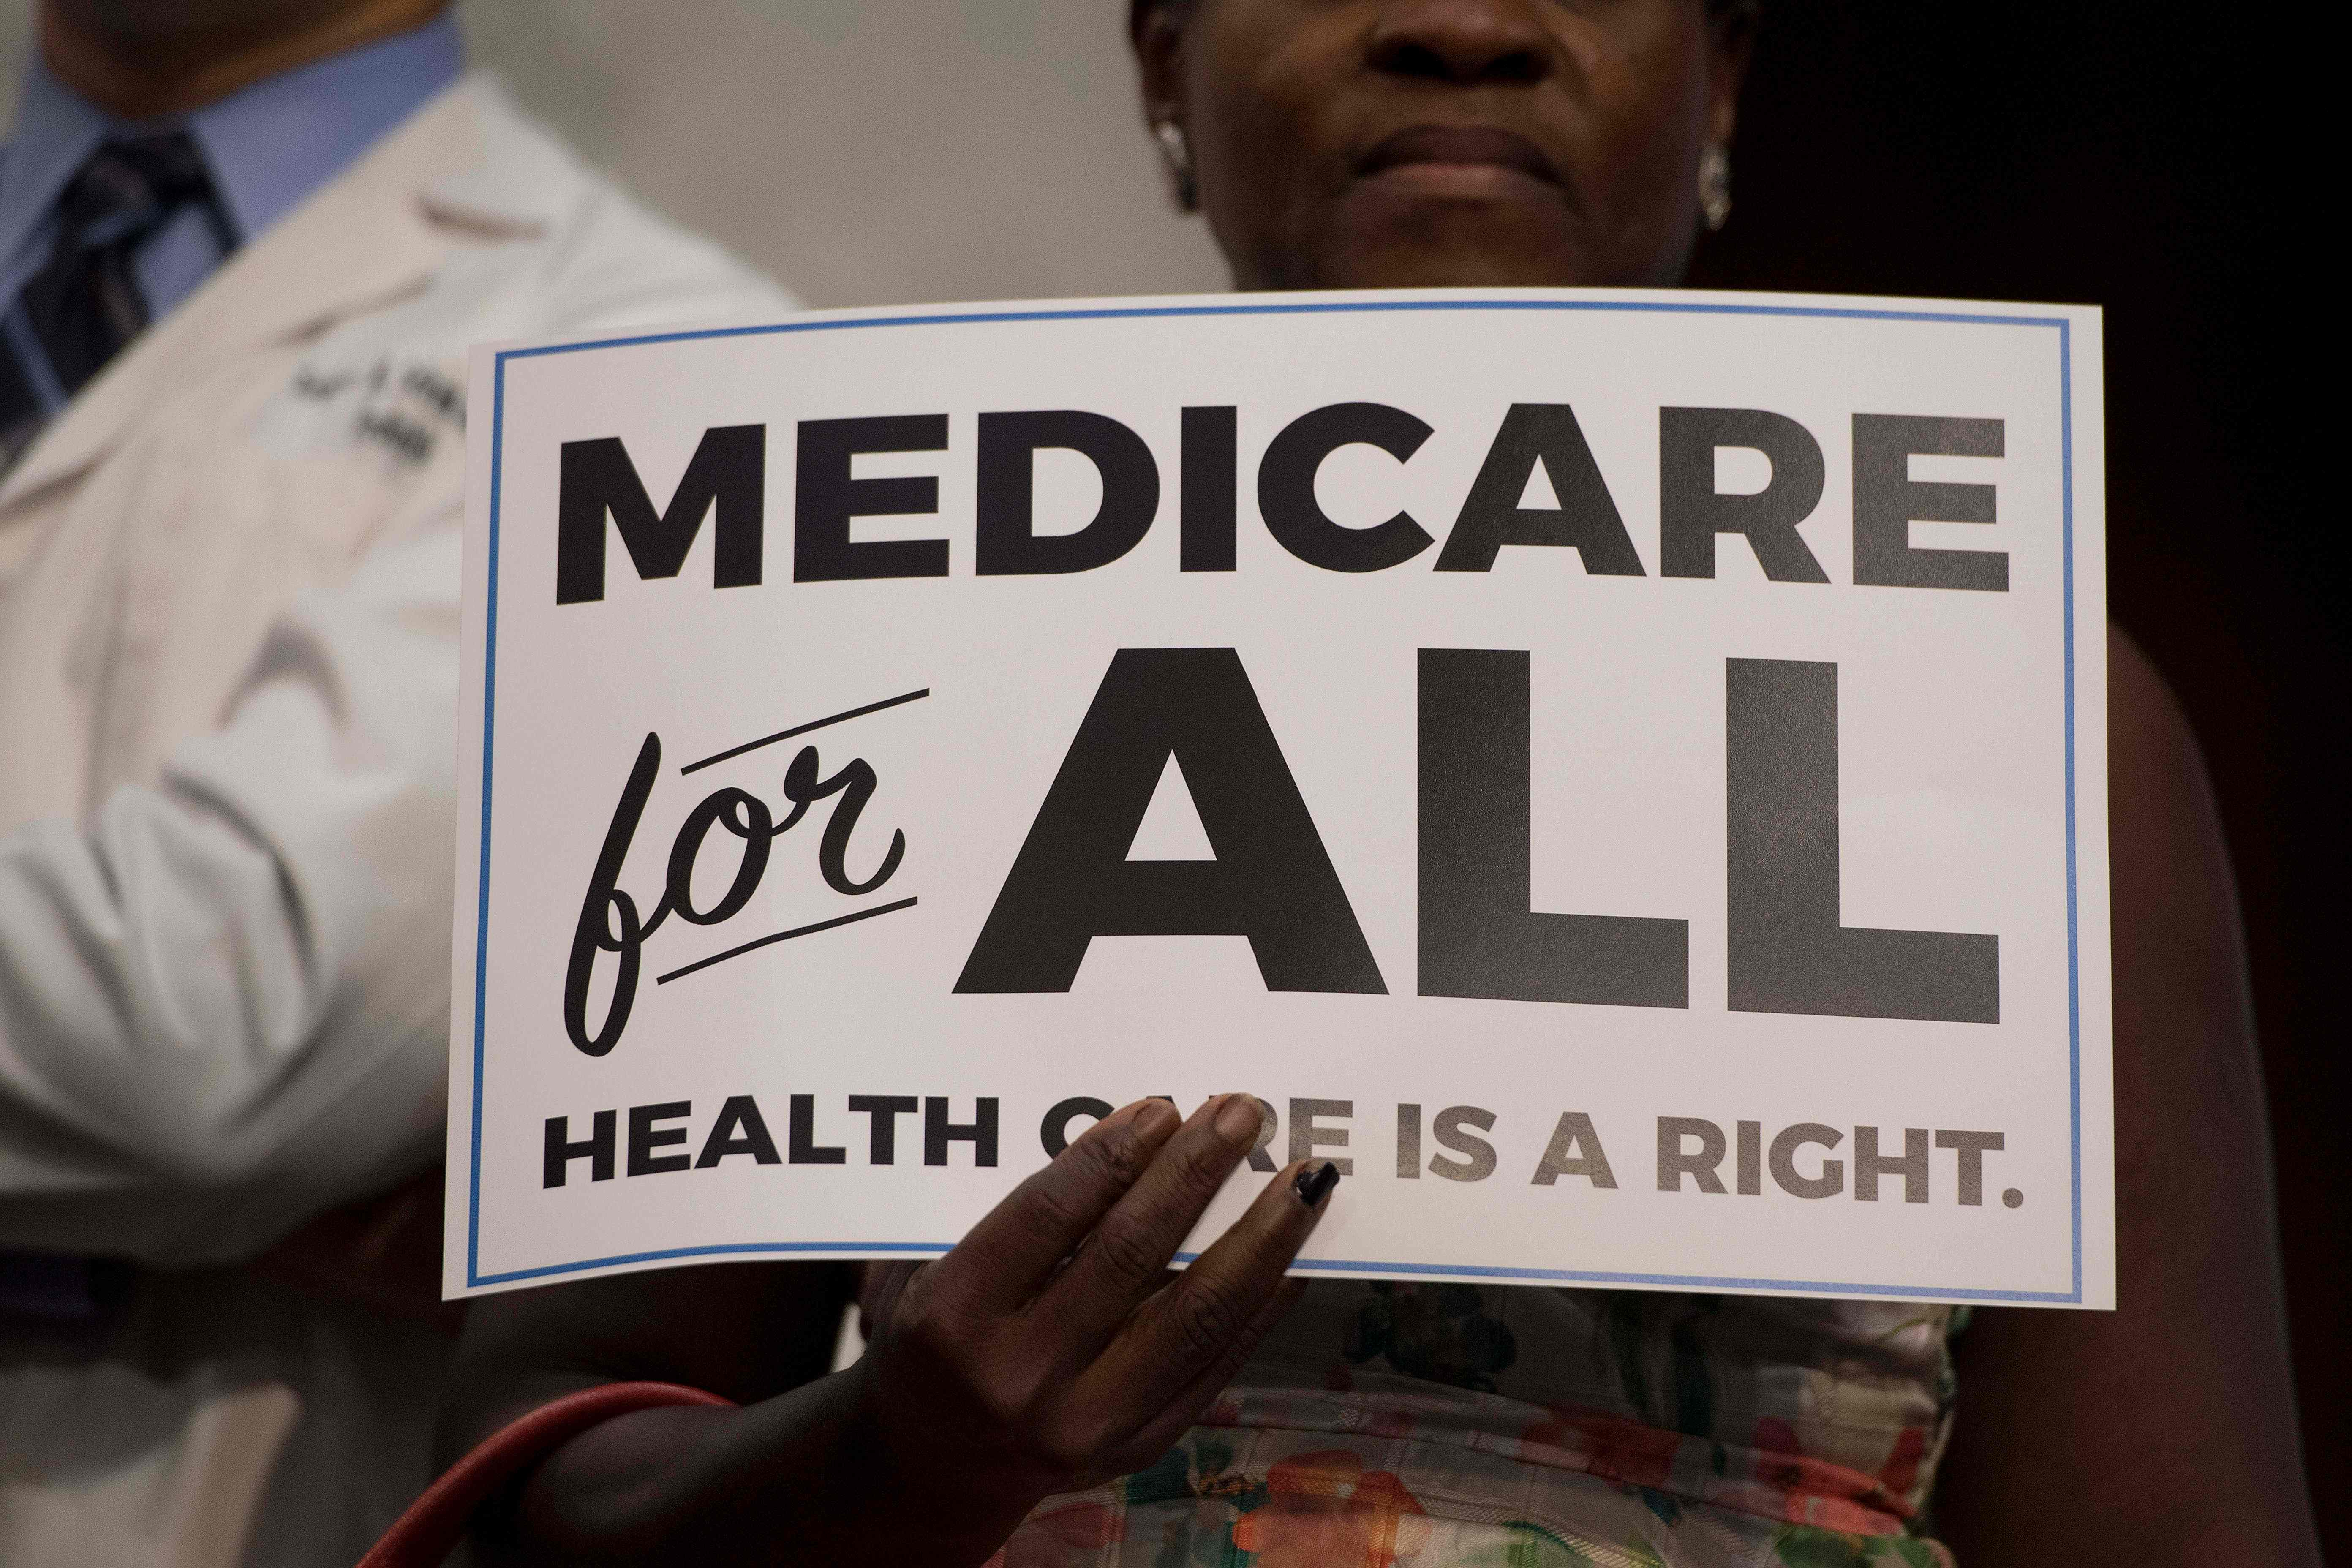 Take it from an economist, Medicare for All is the most sensible way to fix health care